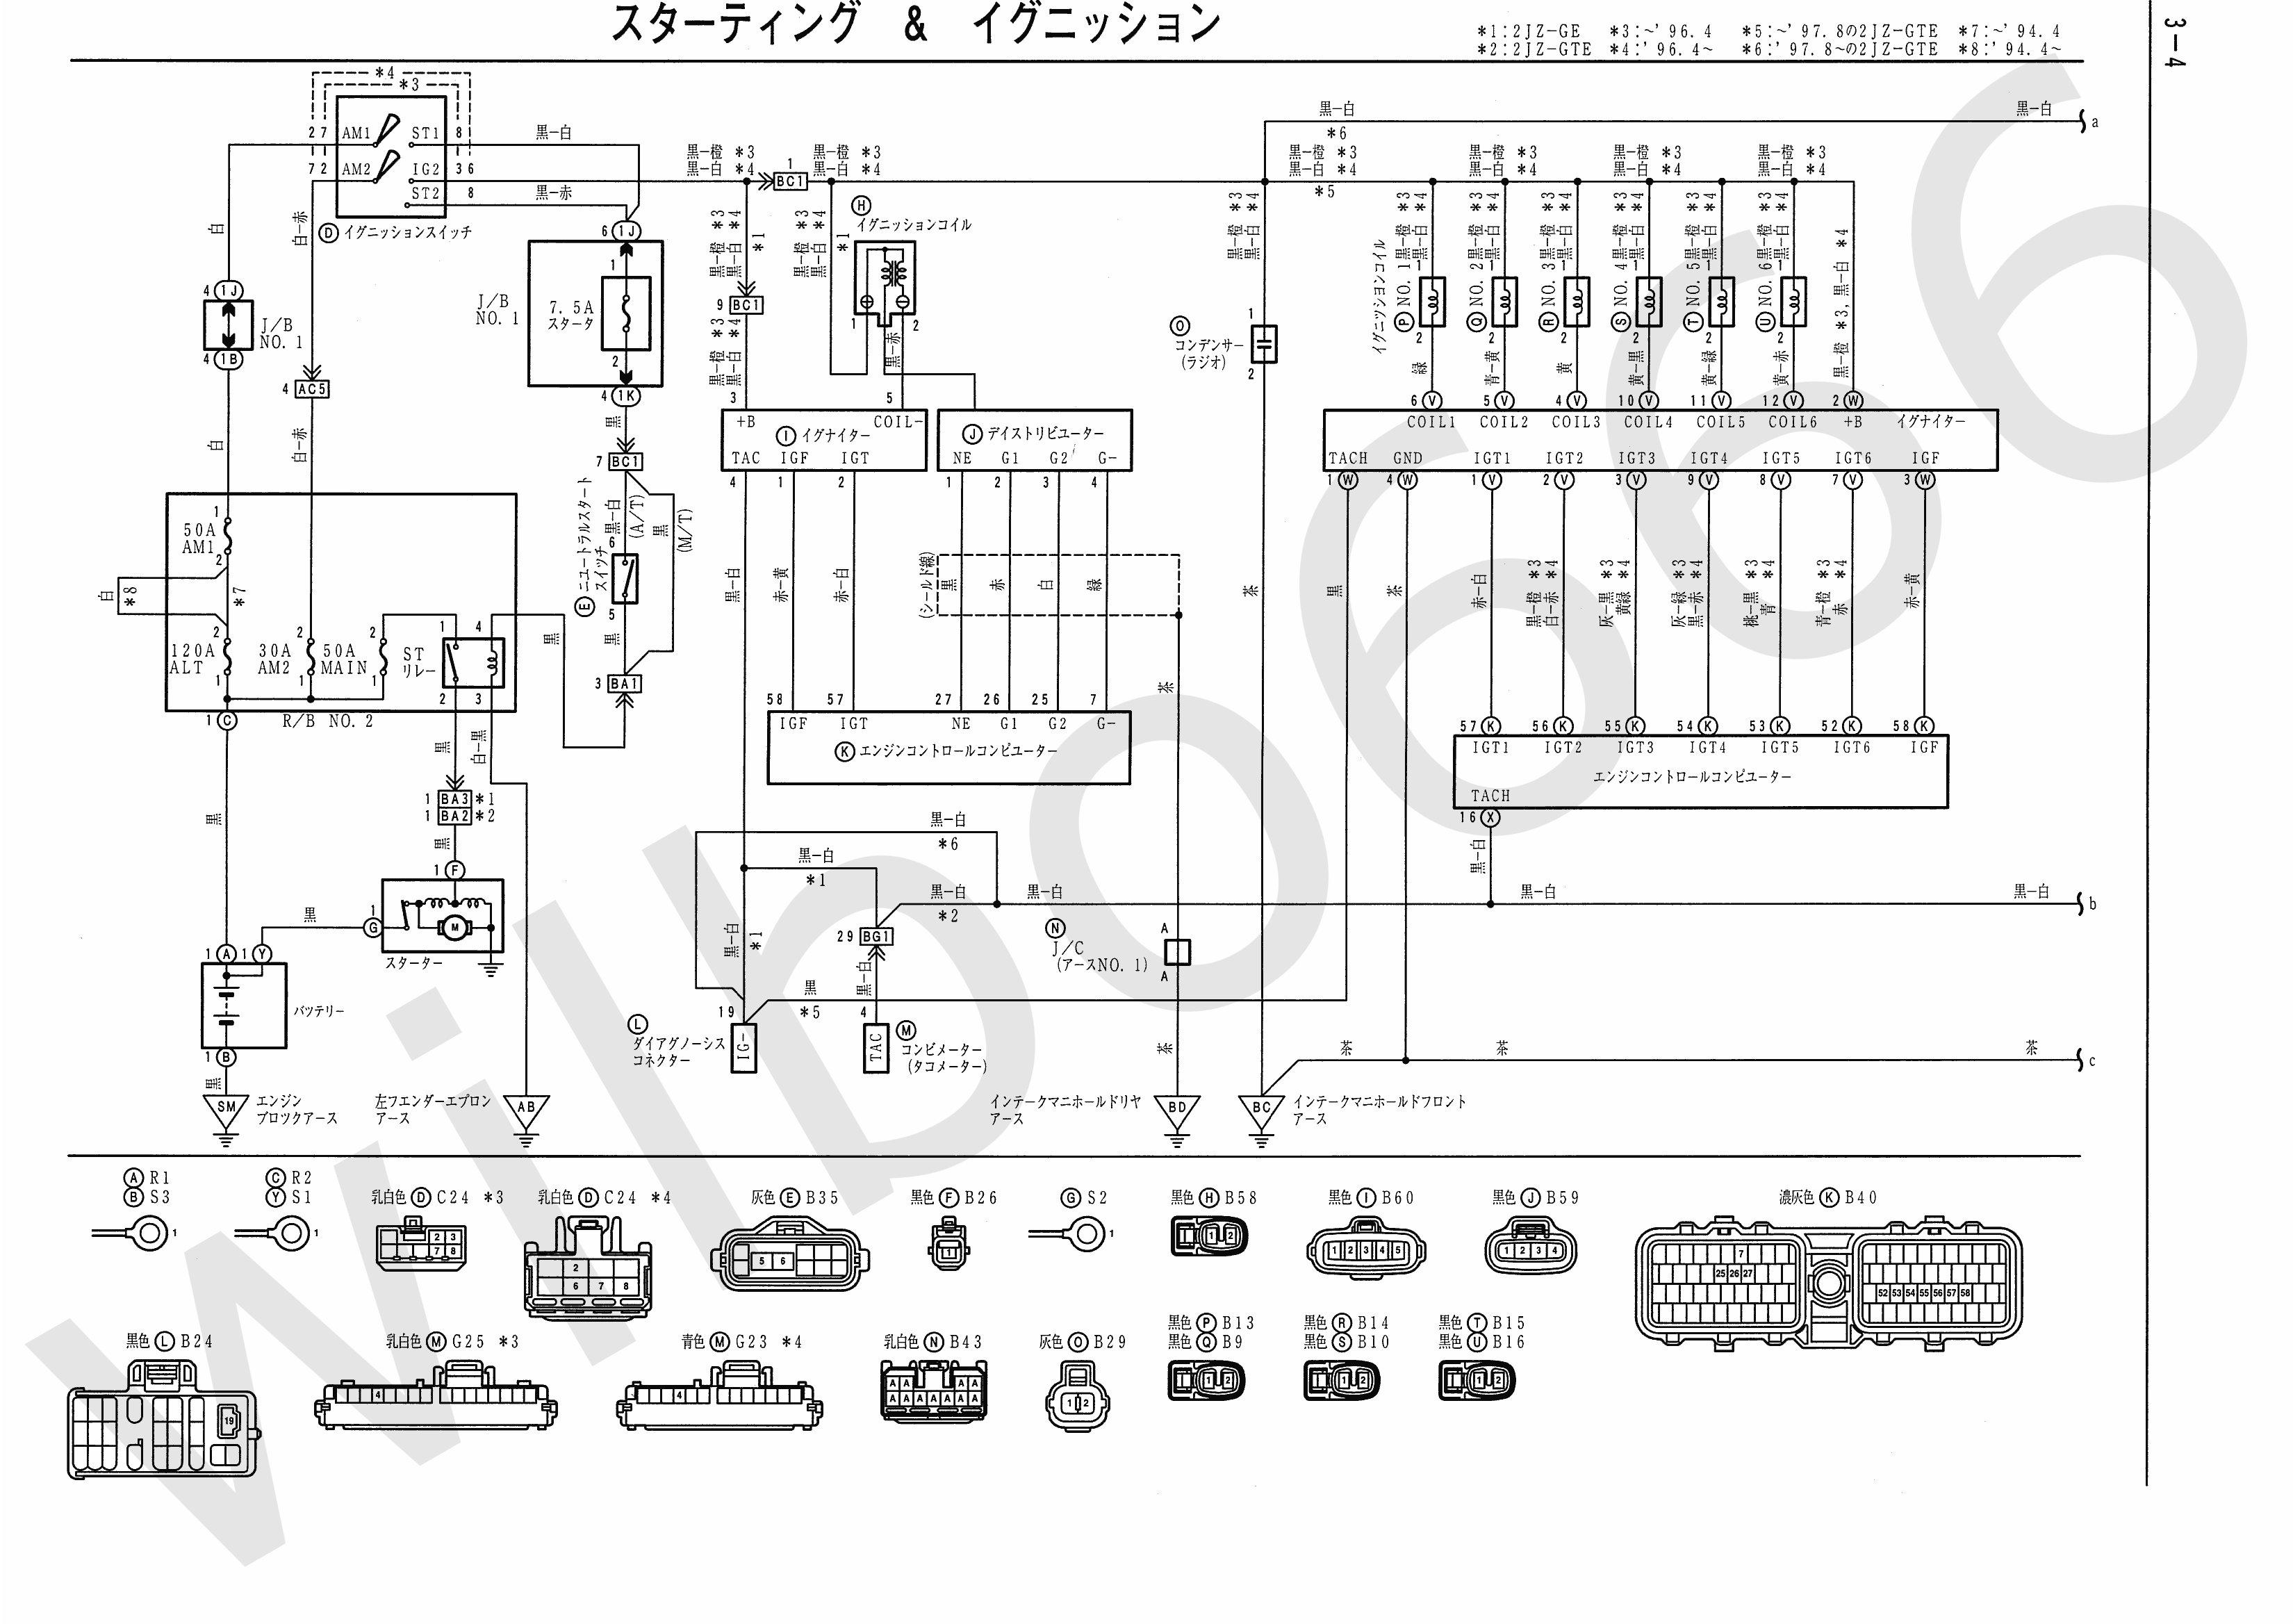 Taylor Dunn Electric Cart 36 Volt Wiring Diagram Diagrams Ktm 300 Starter New On Www Electrical Traylordunn 1972 Cushman Schematic For Alltrax